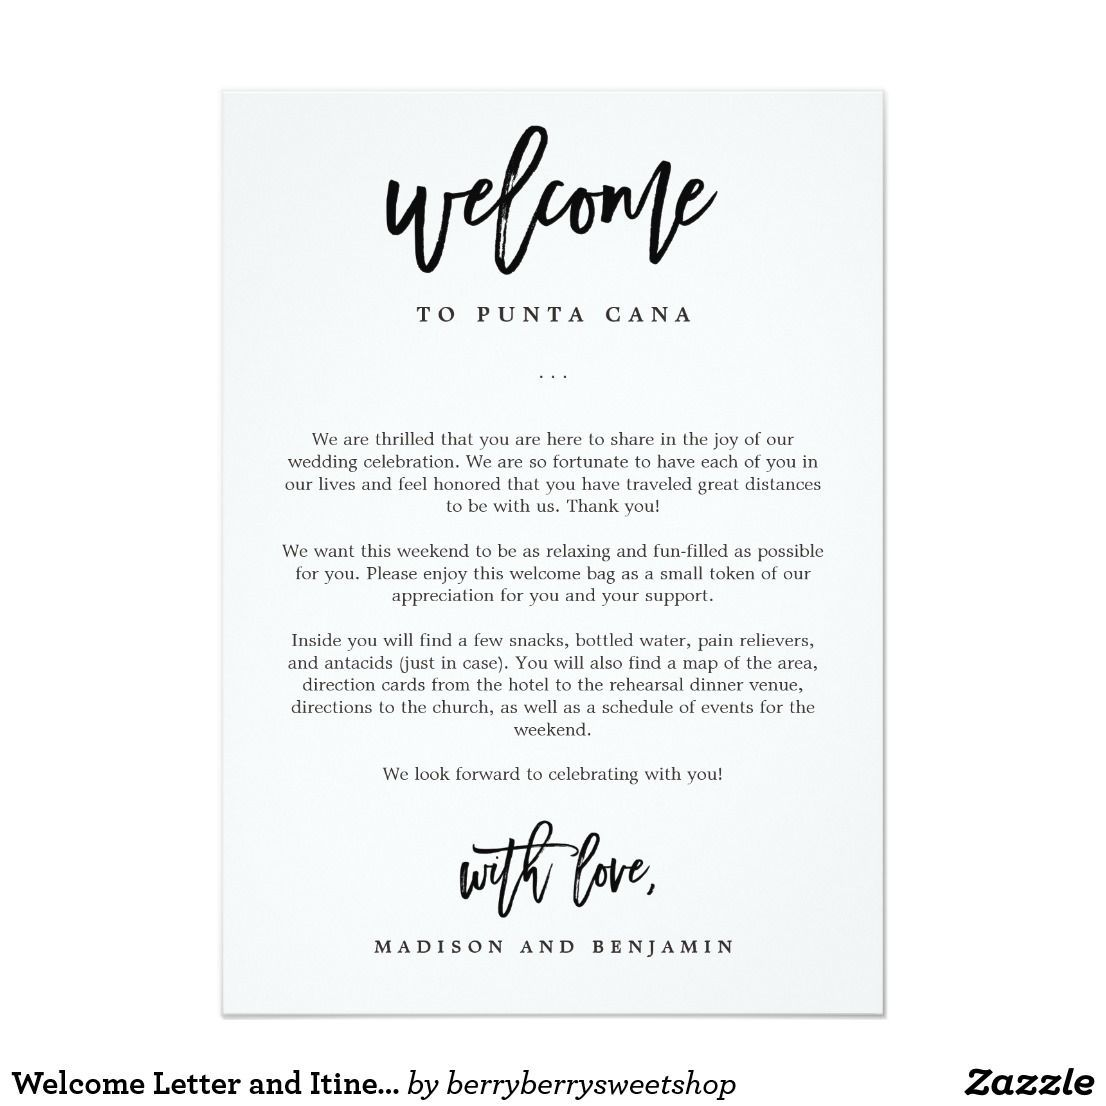 009 Stunning Wedding Hotel Welcome Letter Template Highest Quality Full